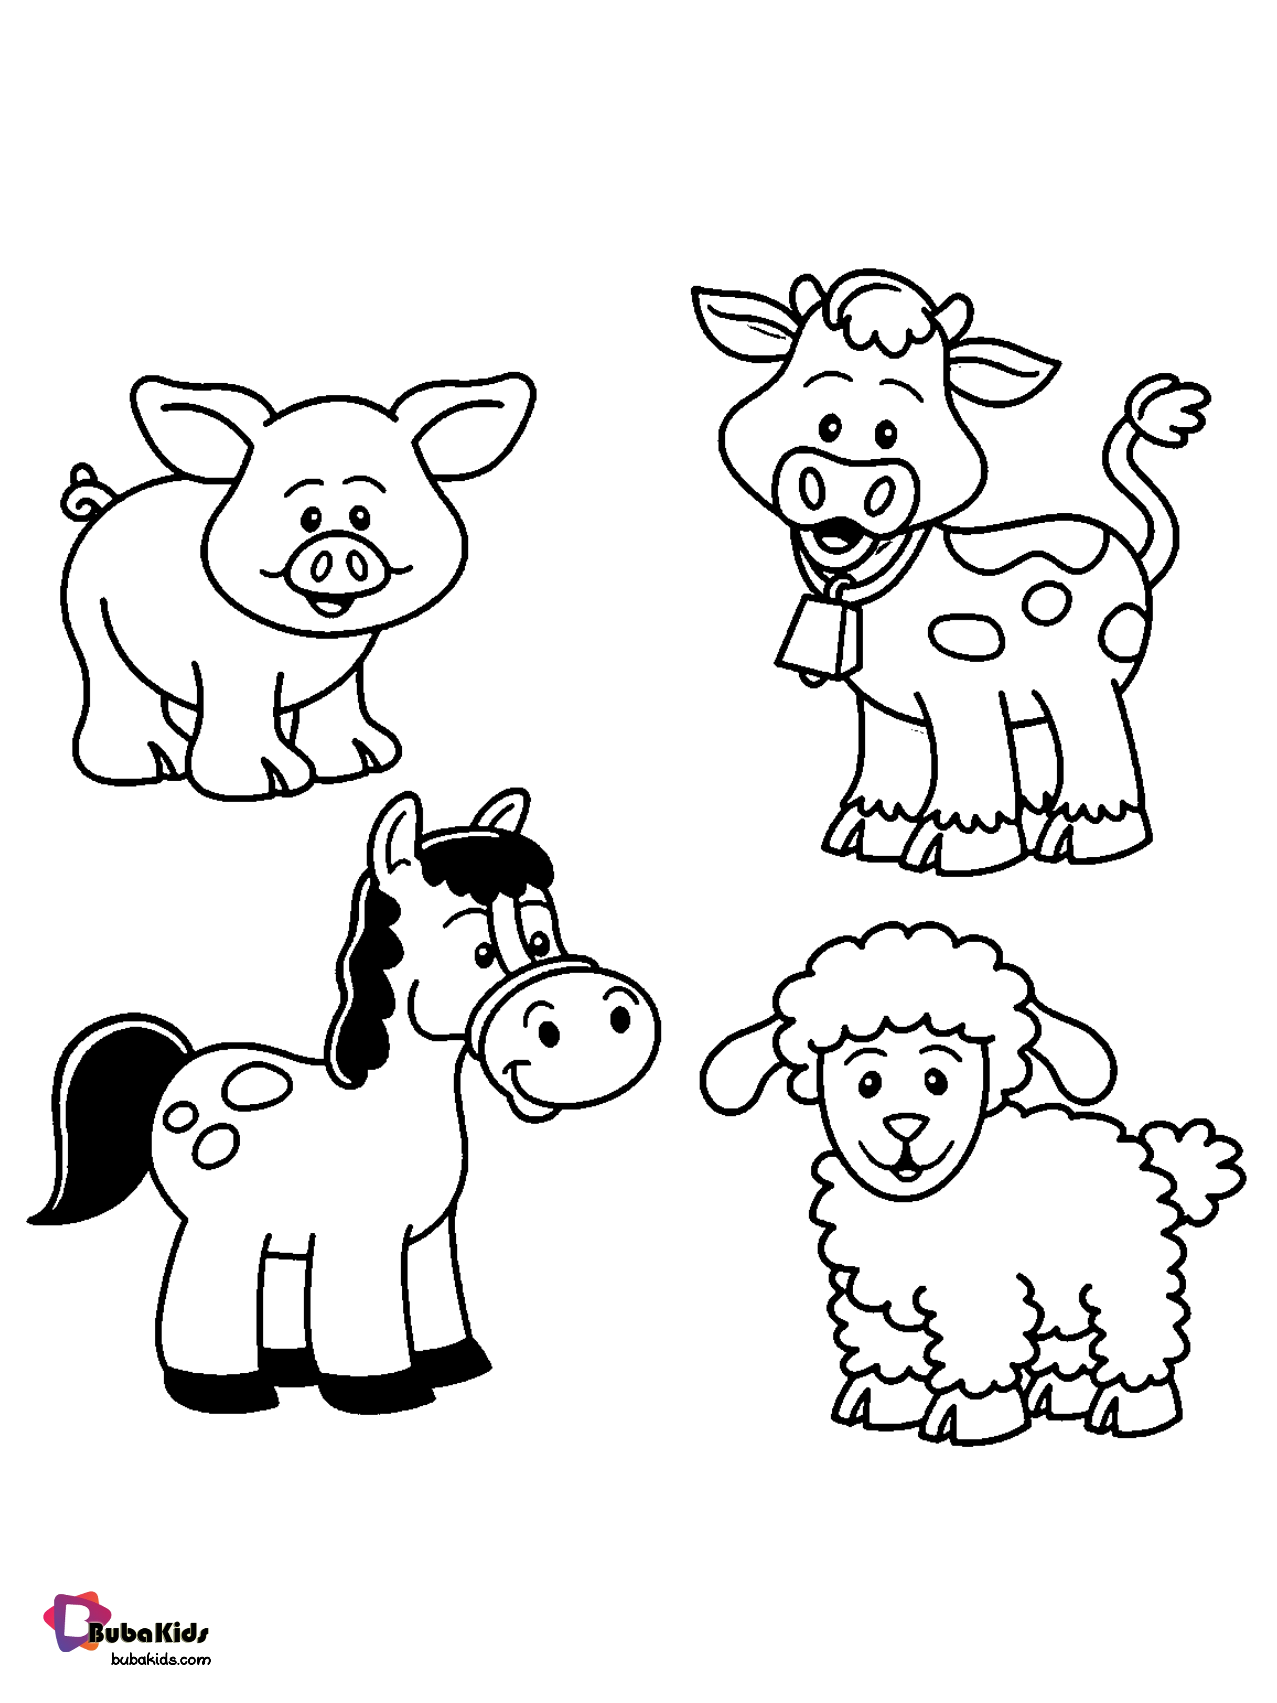 Farm Animals Coloring Pages Collection Of Animal Coloring Pages For Teenage Printab Zoo Animal Coloring Pages Farm Animal Coloring Pages Animal Coloring Books